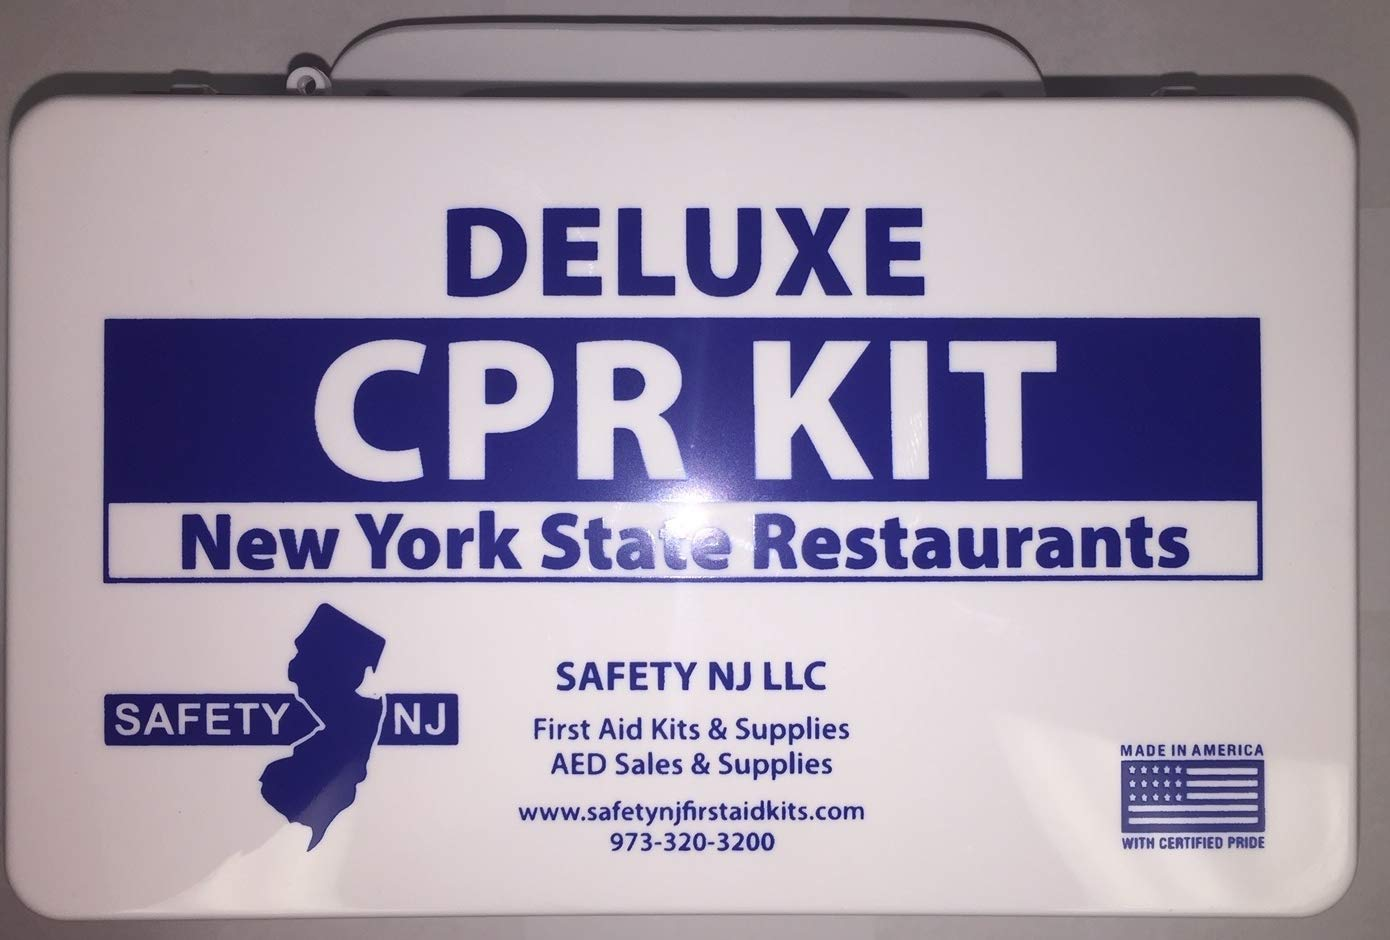 Amazon Deluxe Cpr Kit With Sign New York State Restaurants